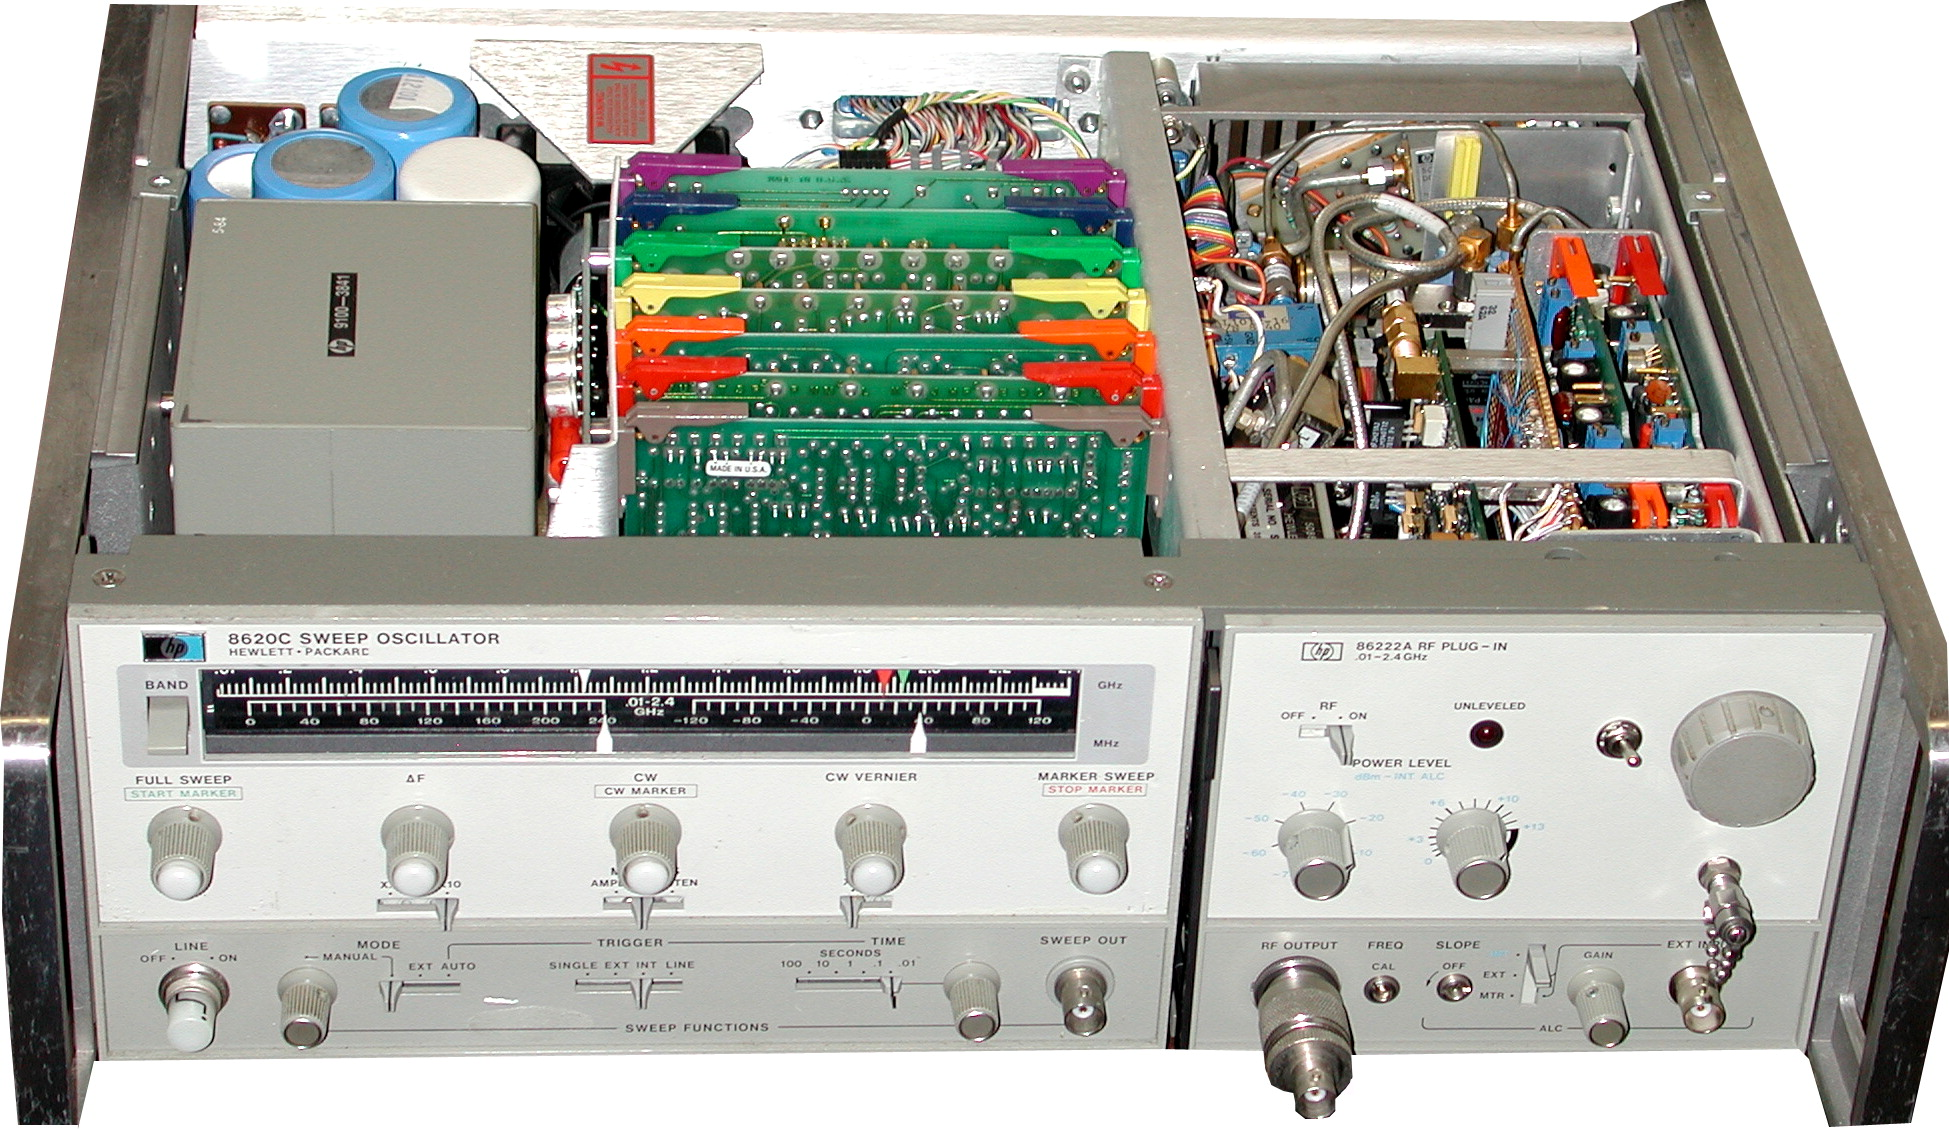 A 2 5-GHz Tracking Generator for the HP 8566A/B Spectrum Analyzer